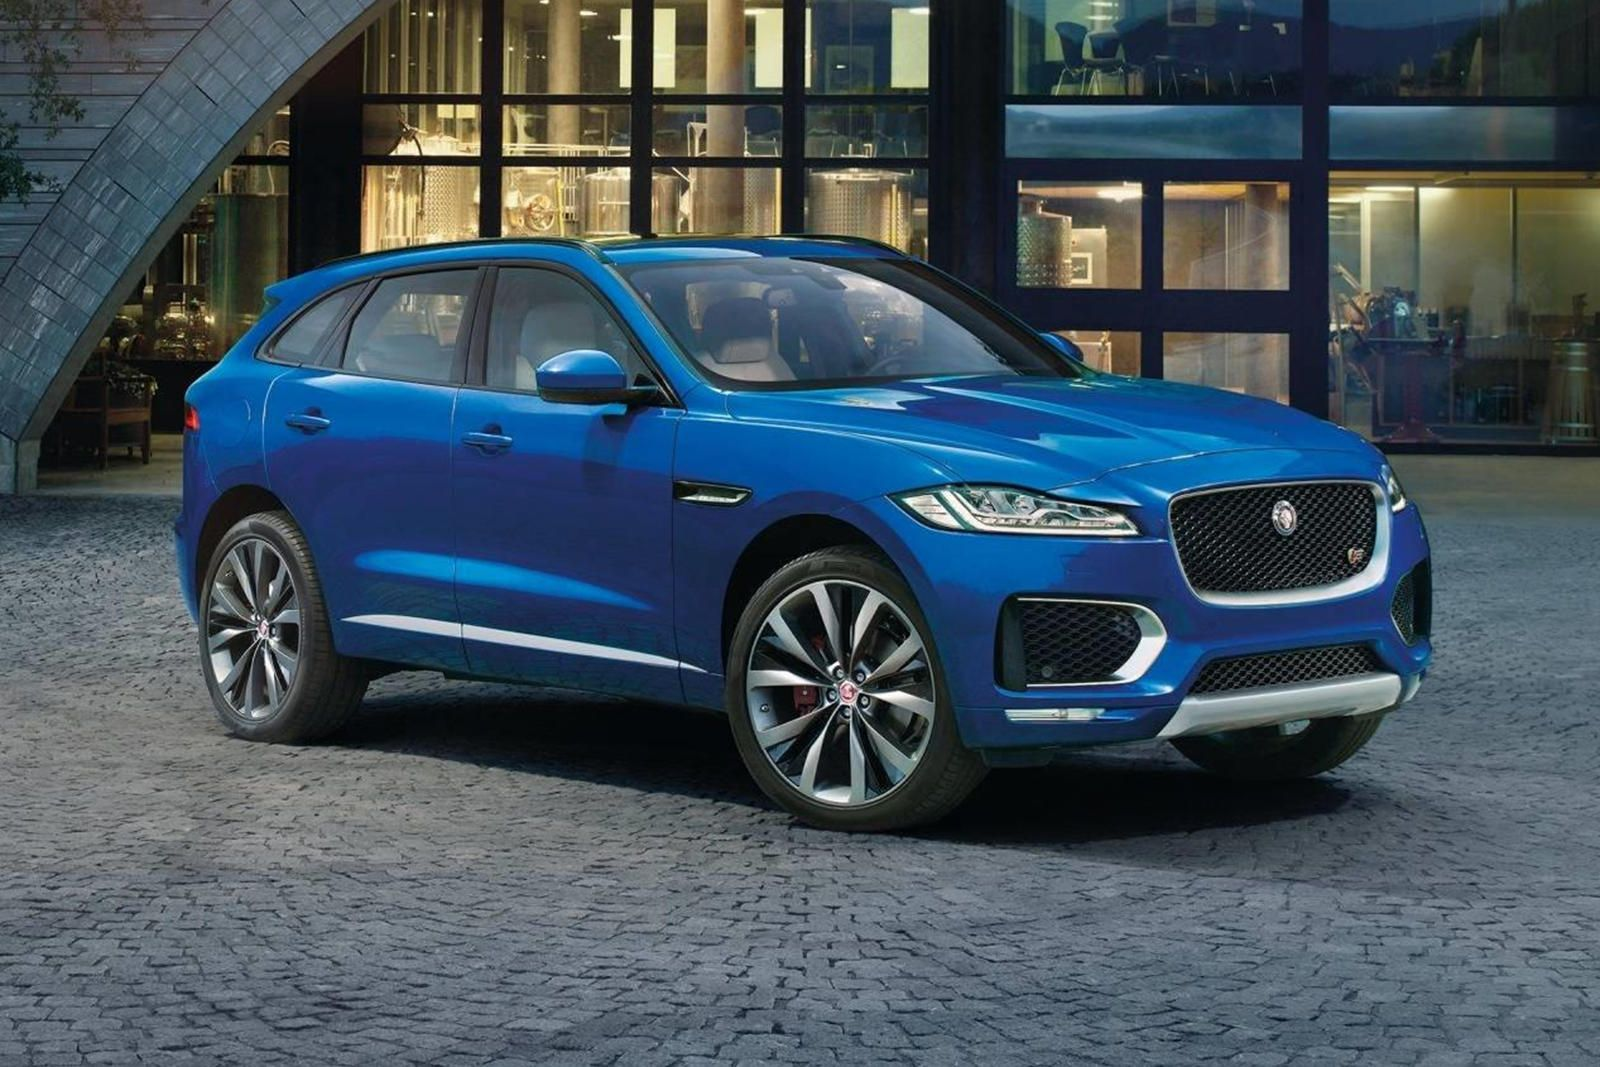 A Used Jaguar F Pace Is A Stunning Luxury Suv Bargain It Now Costs Less Than A New Toyota Rav4 In 2020 Jaguar Suv Luxury Suv Jaguar Usa